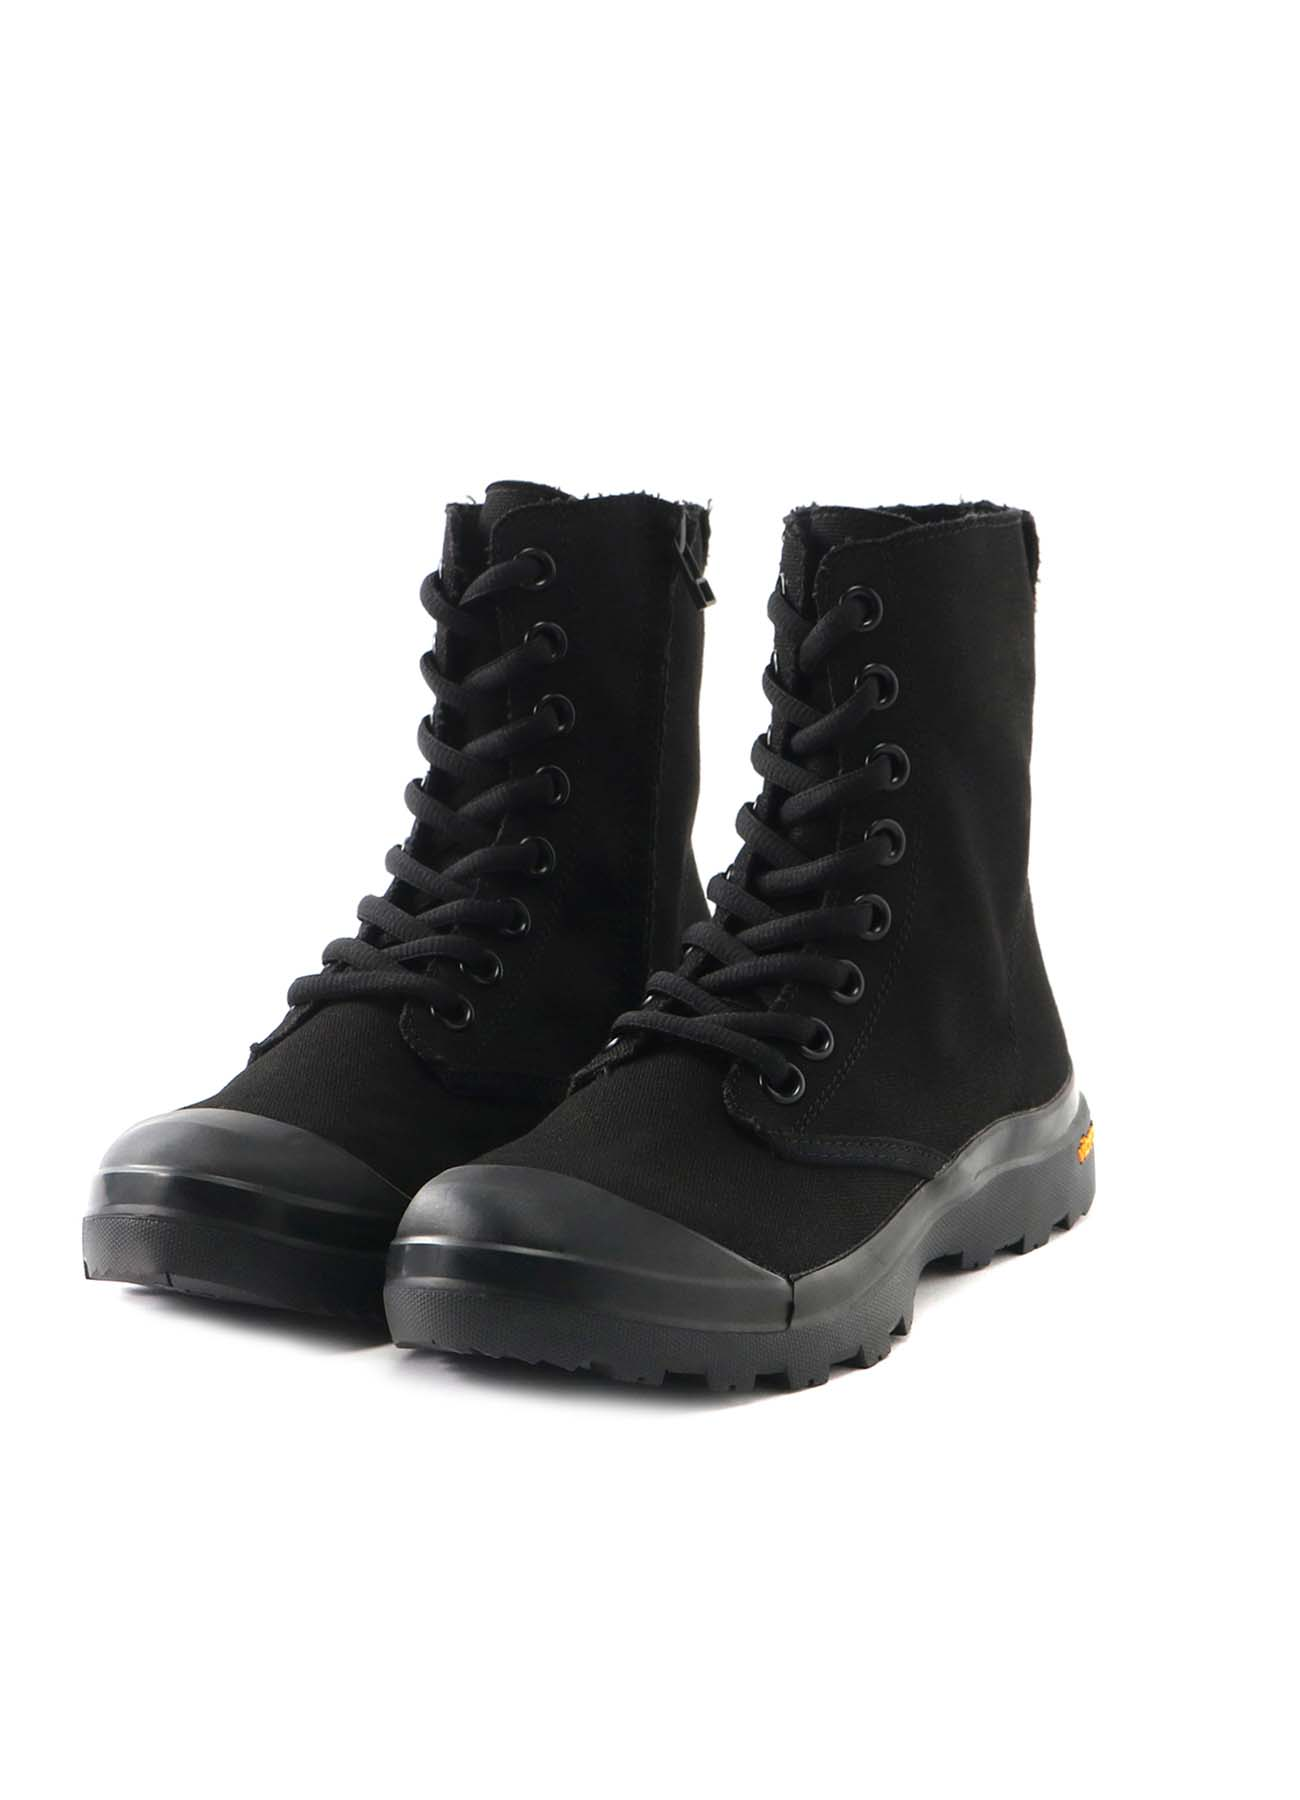 NO. 8 CANVAS A LACE UP FASTENER BOOTS